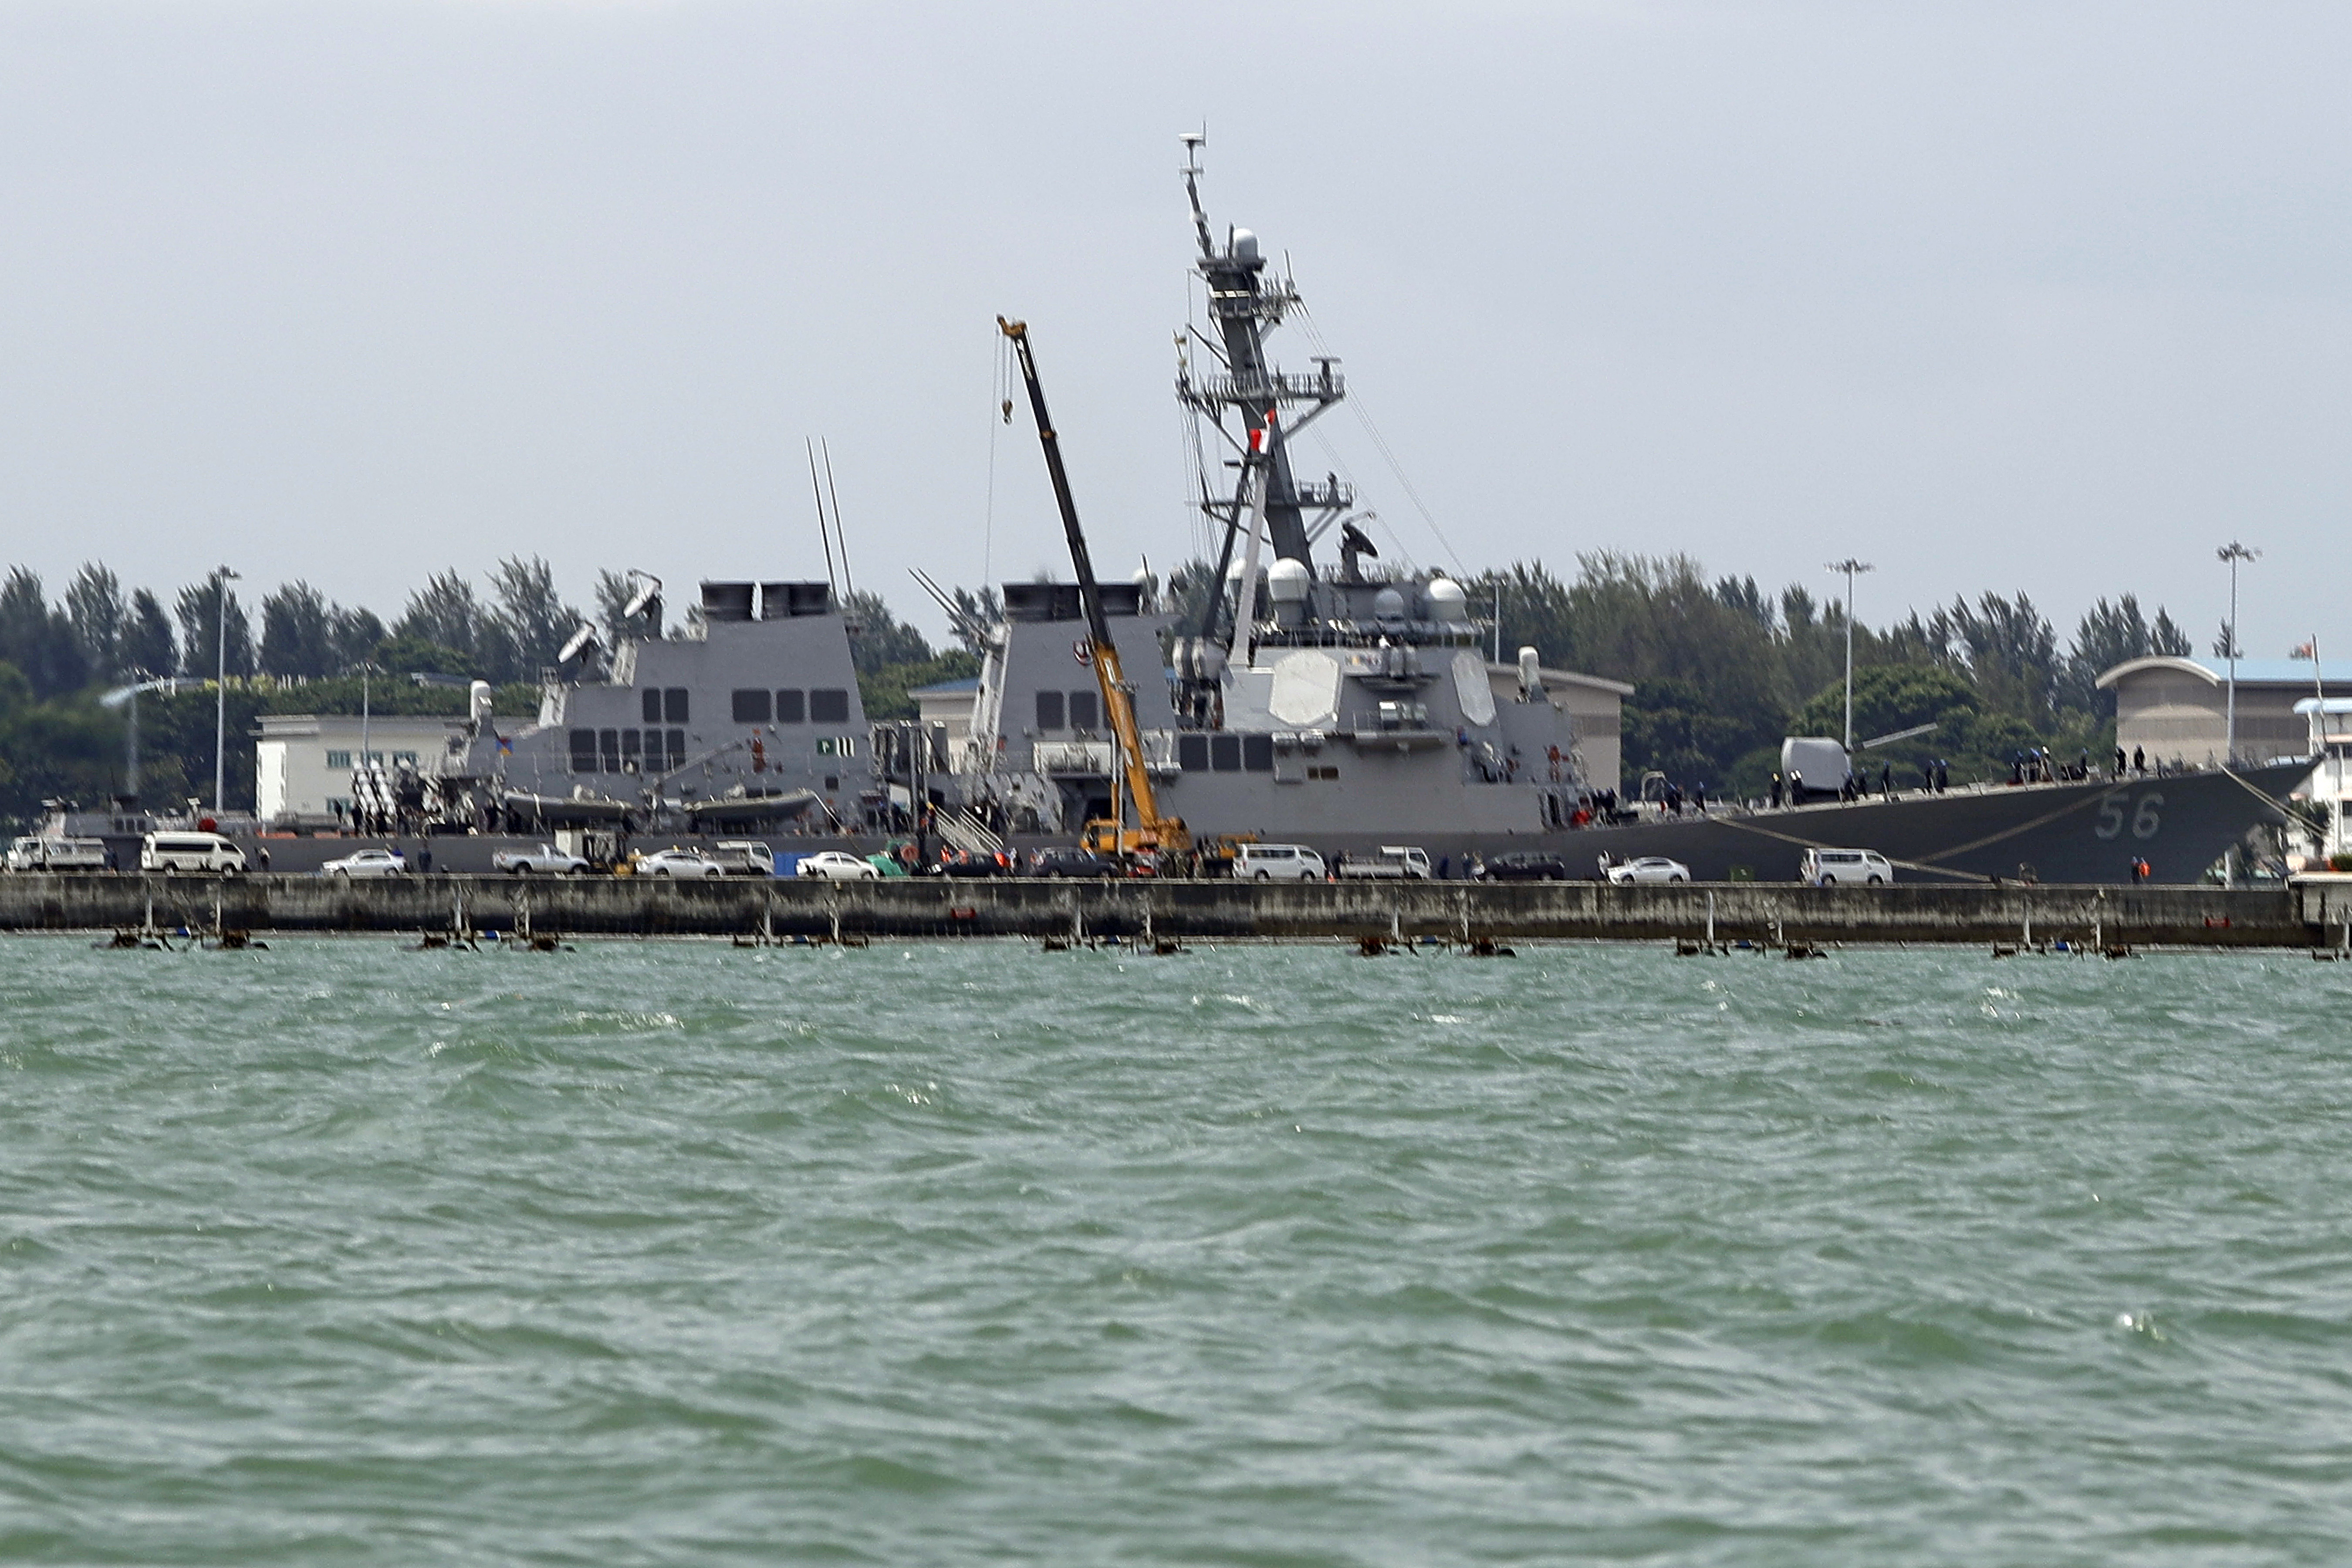 """Singapore US Navy Ship Collision-11 The USS John S. McCain is seen docked at Changi naval base after its accident Monday, Aug. 21, 2017 in Singapore. The USS John S. McCain was docked at Singapore's naval base with """"significant damage"""" to its hull after an early morning collision with the oil tanker Alnic MC as vessels from several nations searched Monday for missing U.S. sailors. (AP Photo/Wong Maye-E)"""